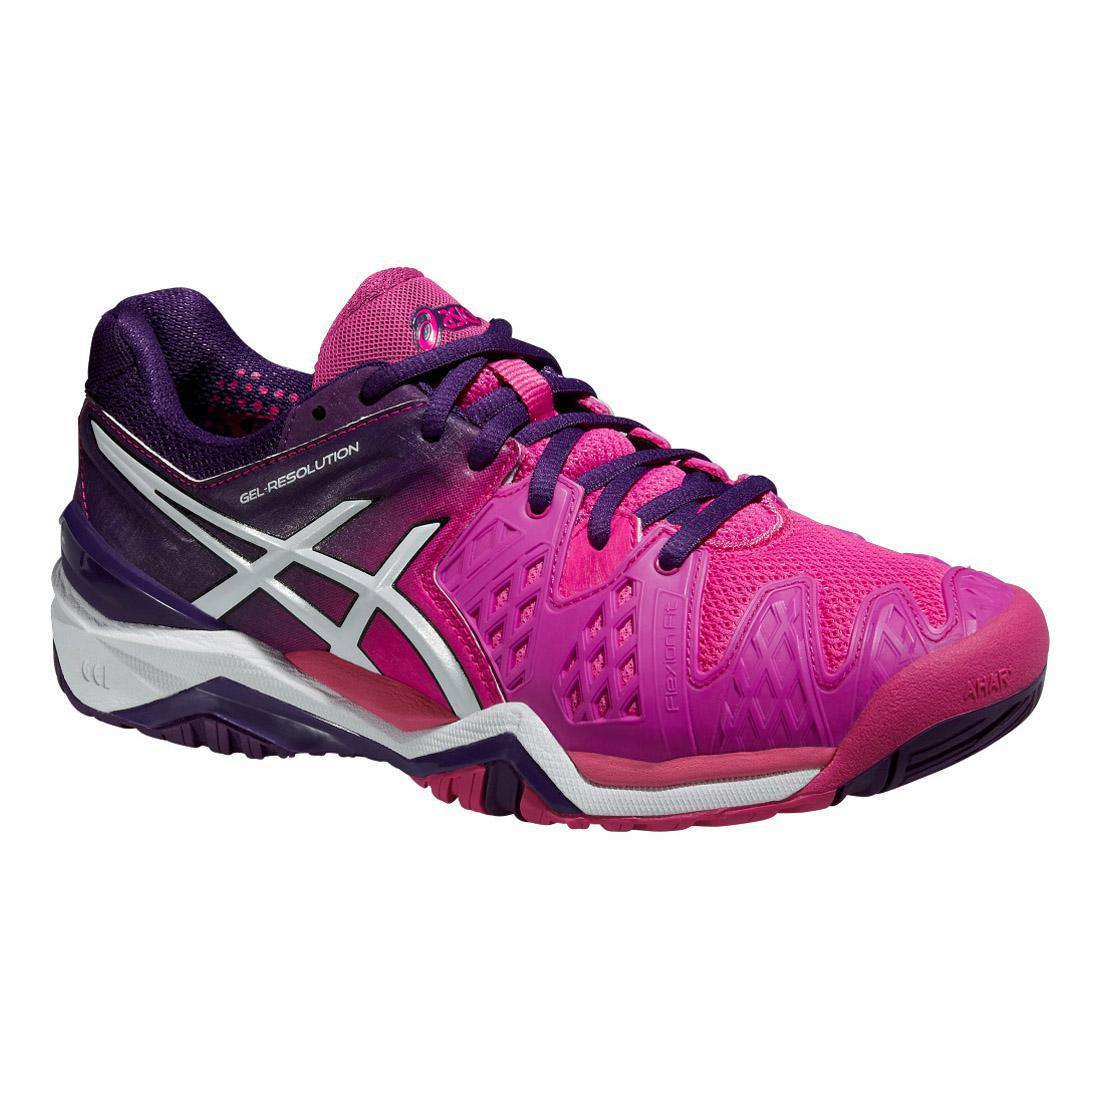 asics womens gel resolution 6 tennis shoes pink purple